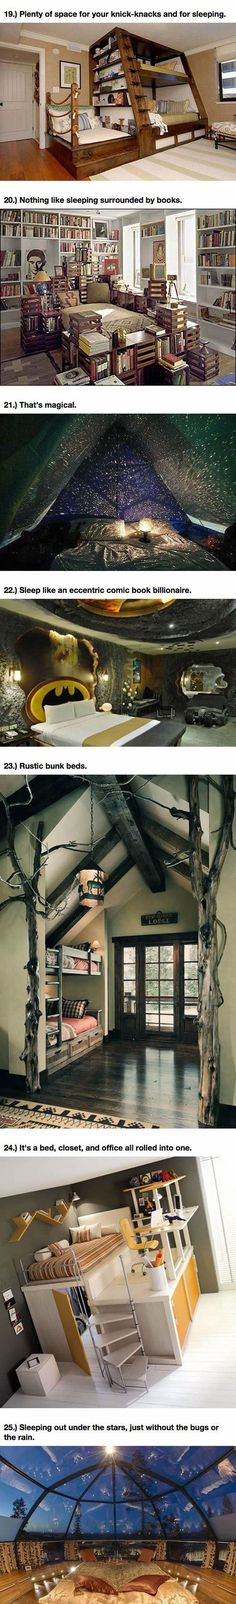 Best bed designs ever: